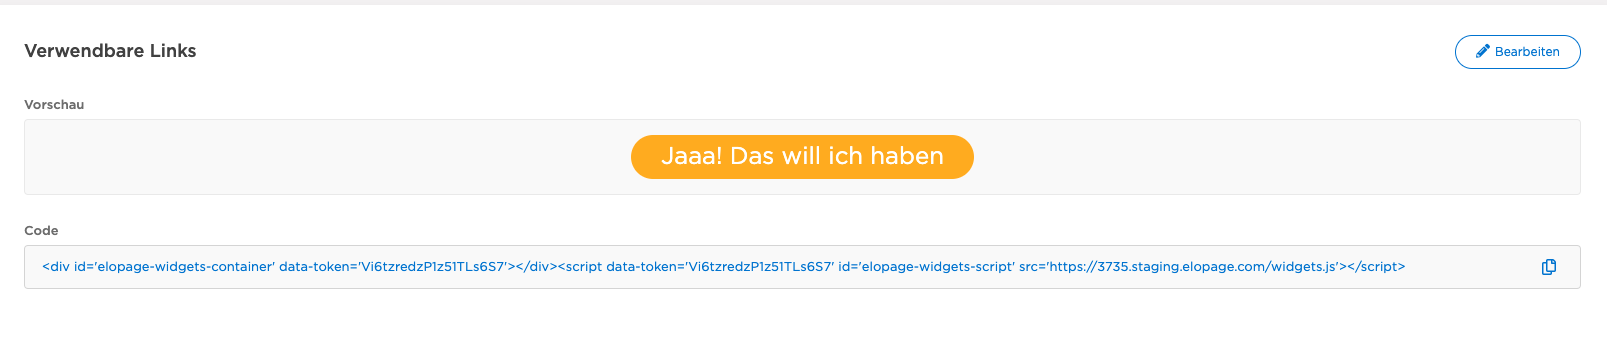 Marketing-Tools_-_Button_erstellen.png